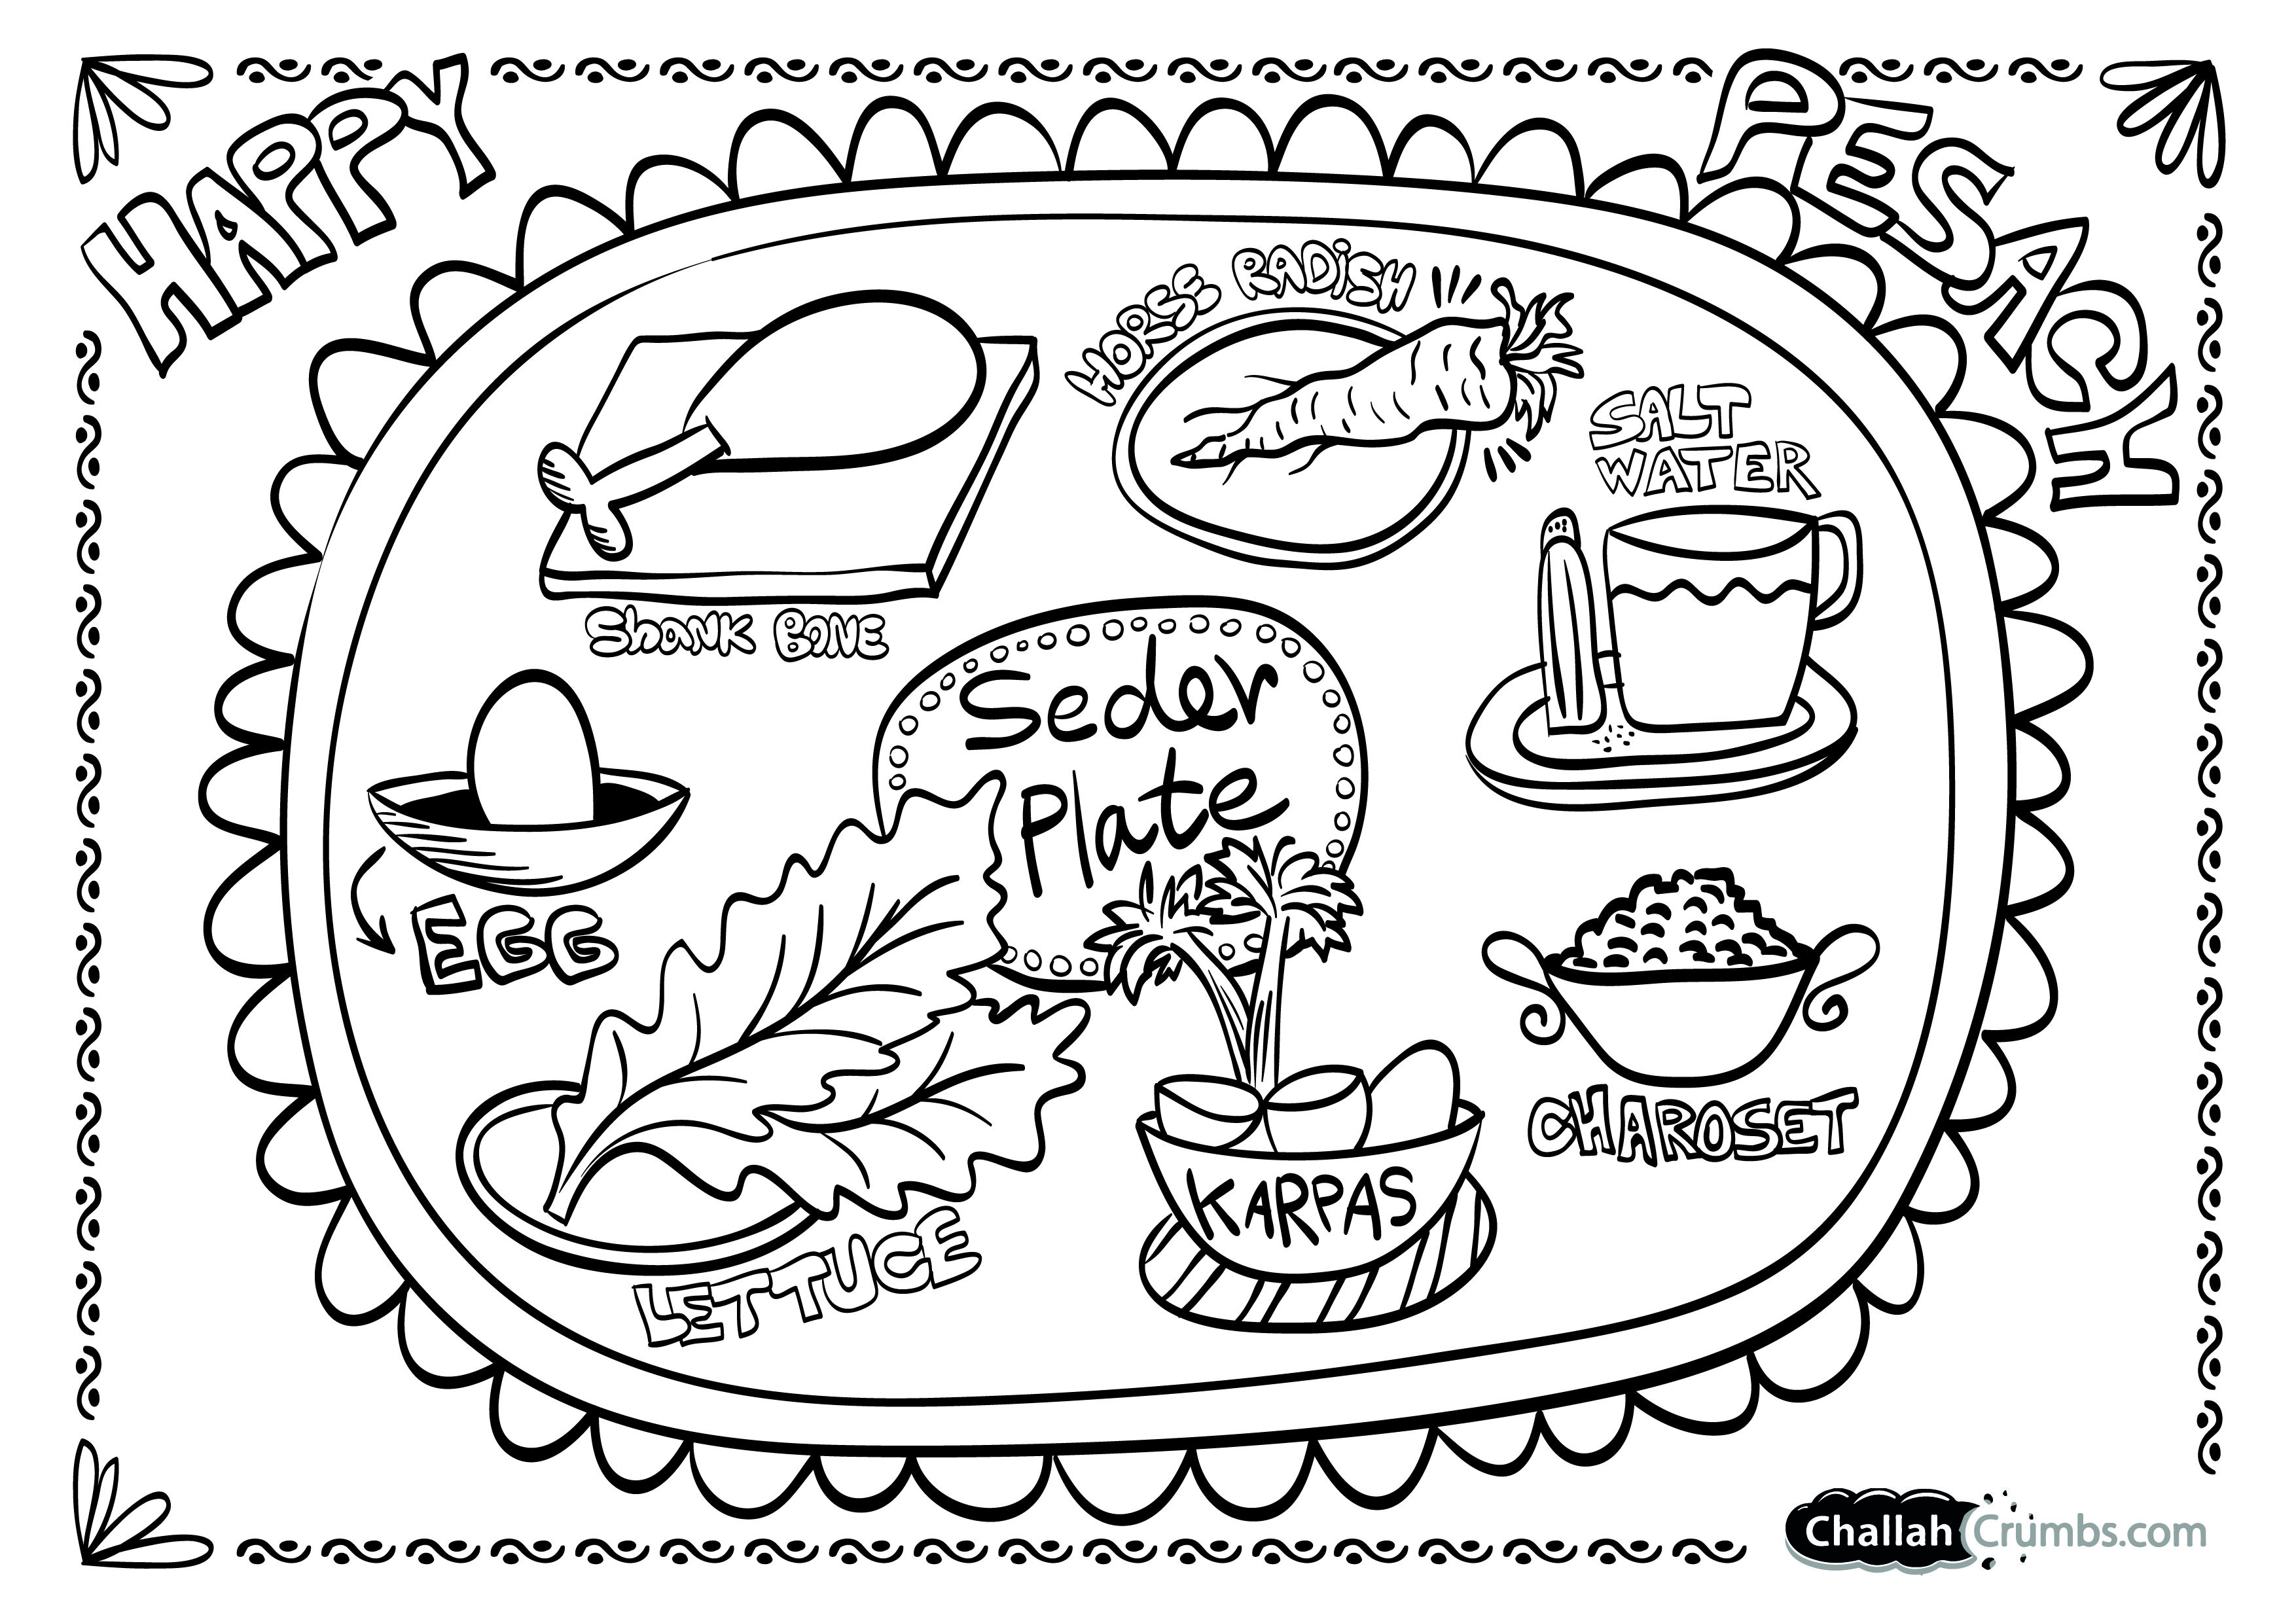 Coloring Page: Seder Plate.